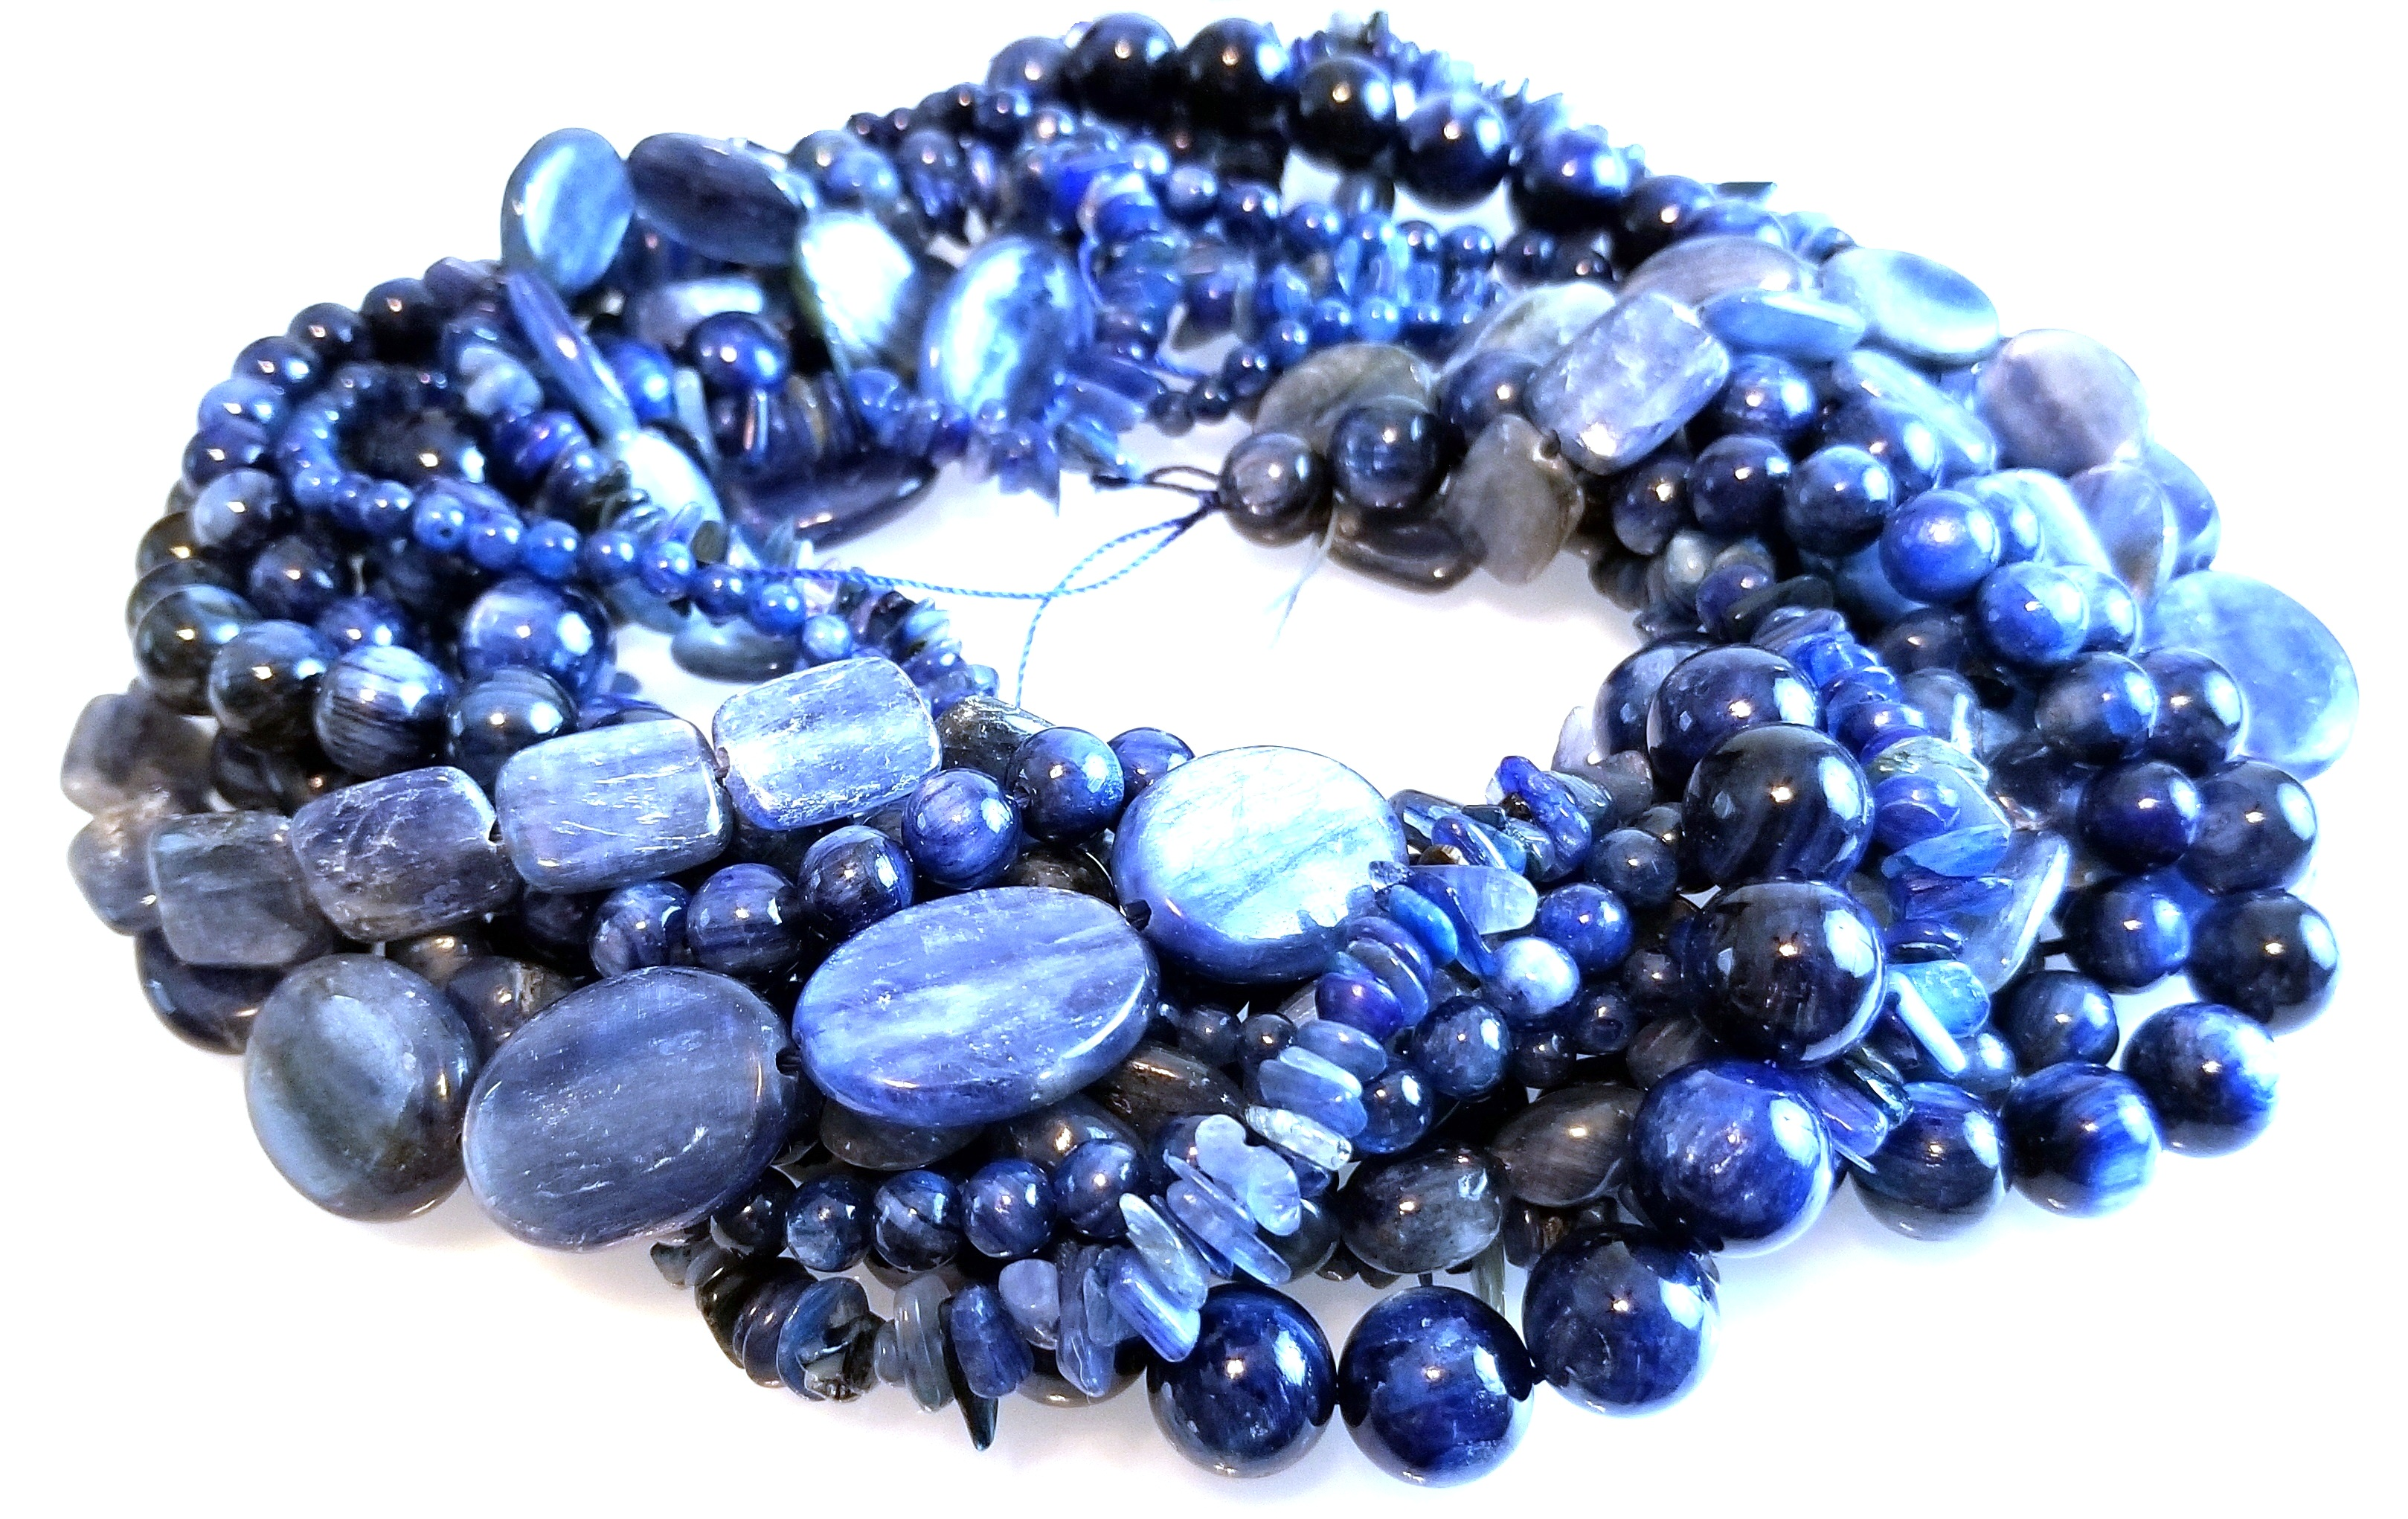 Kyanite Semiprecious Gemstone Bead Assortment